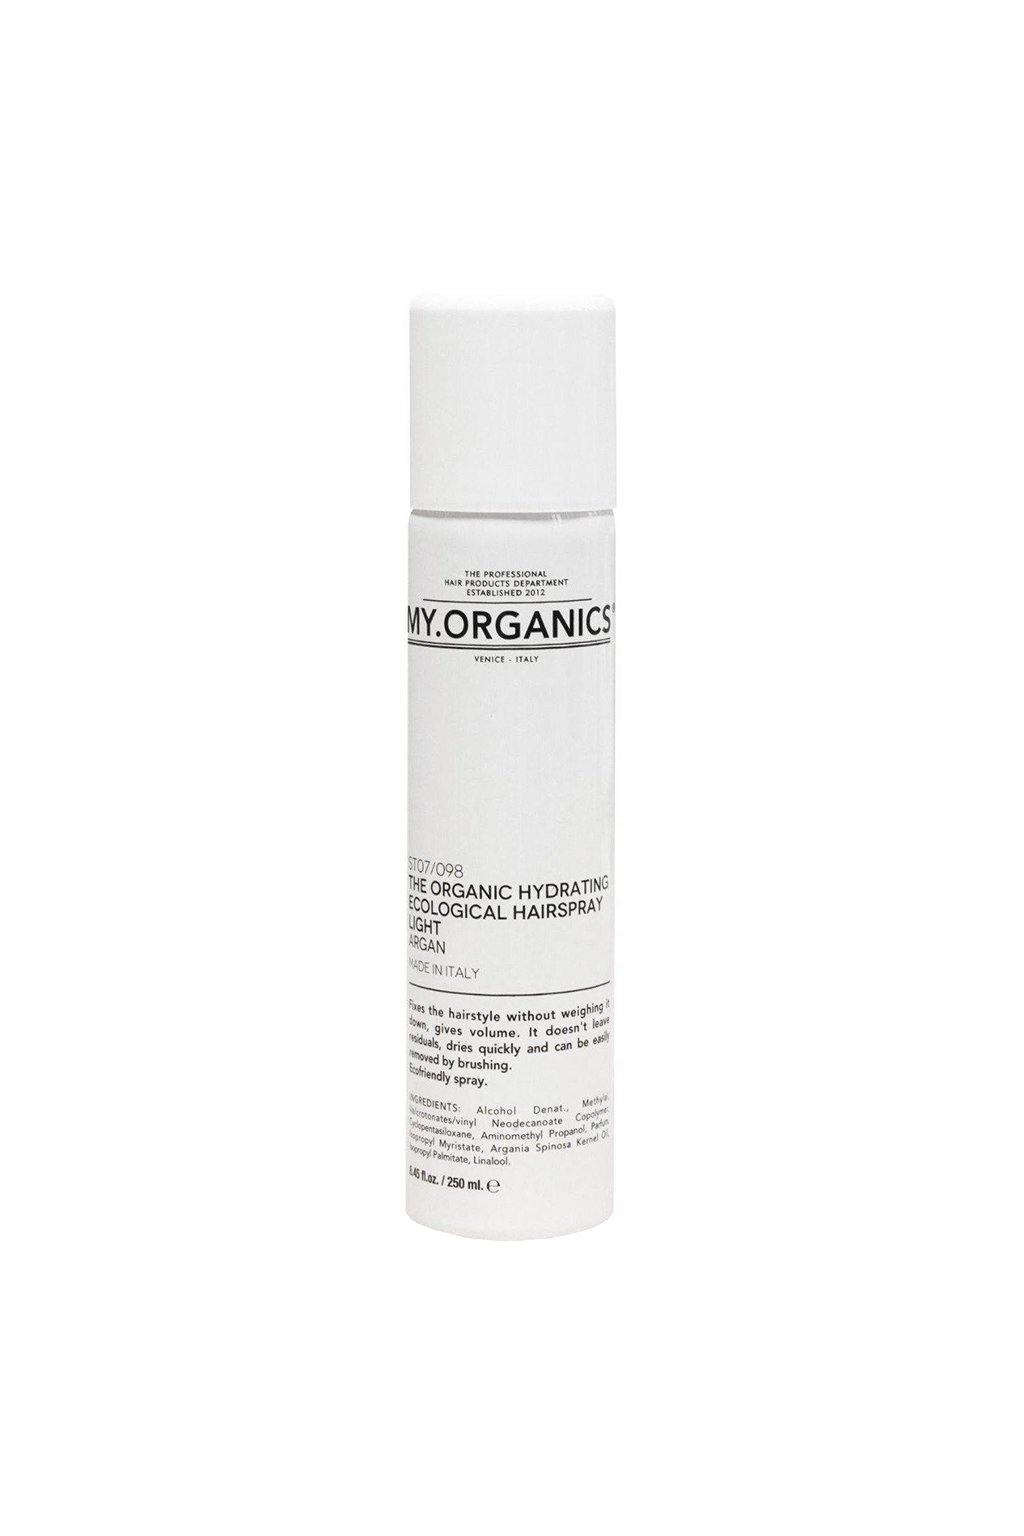 MY.ORGANICS THE ORGANIC HYDRATING ECOLOGICAL HAIRSPRAY LIGHT ARGAN 250ML